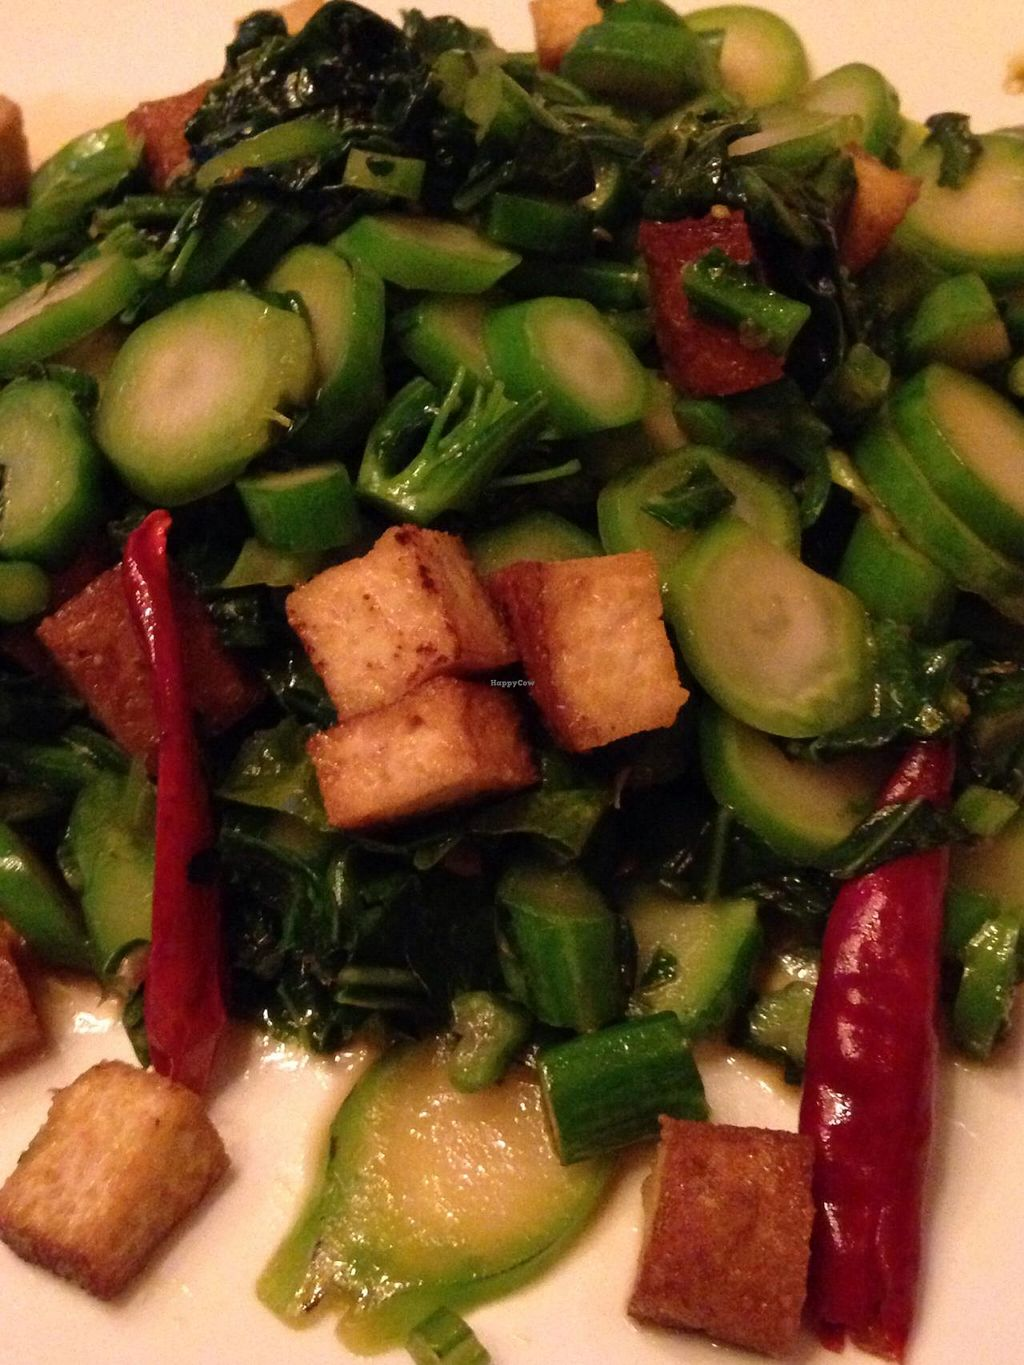 """Photo of Su Xing House  by <a href=""""/members/profile/cookiem"""">cookiem</a> <br/>Kale and dried tofu with dried red pepper  <br/> July 24, 2015  - <a href='/contact/abuse/image/7118/110762'>Report</a>"""